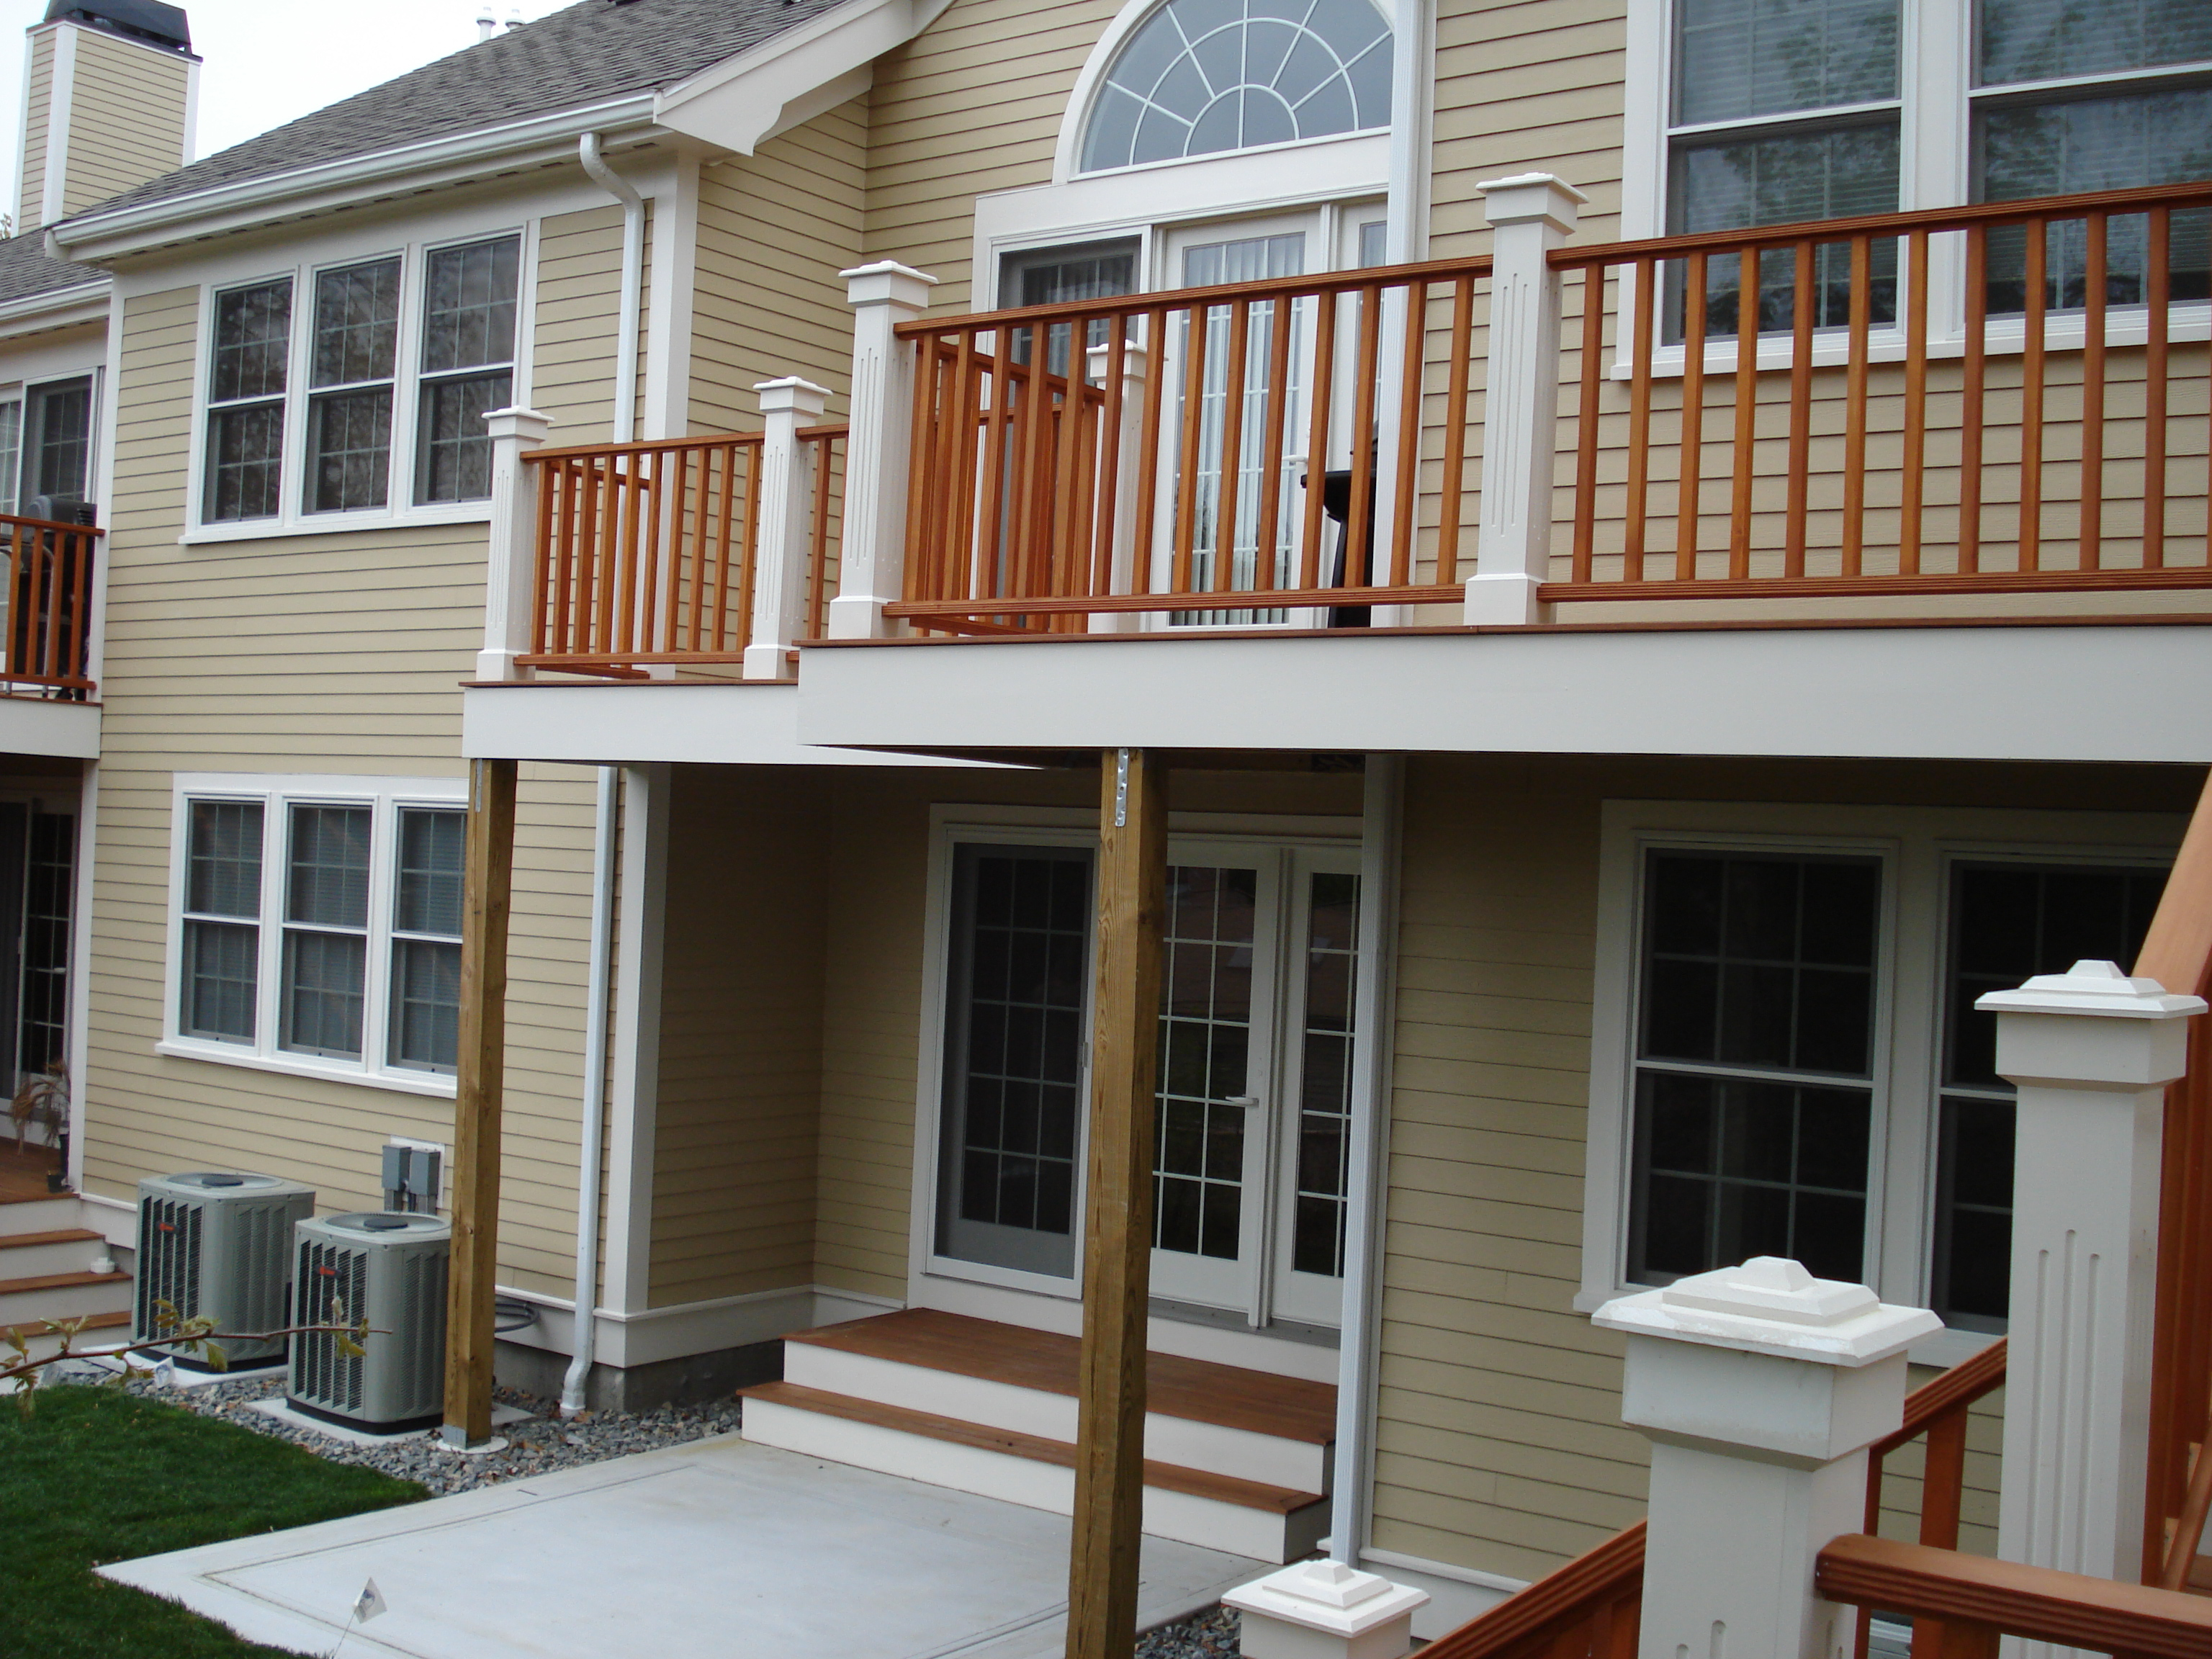 Types of wood siding for houses great exterior design for Types of wood siding for houses